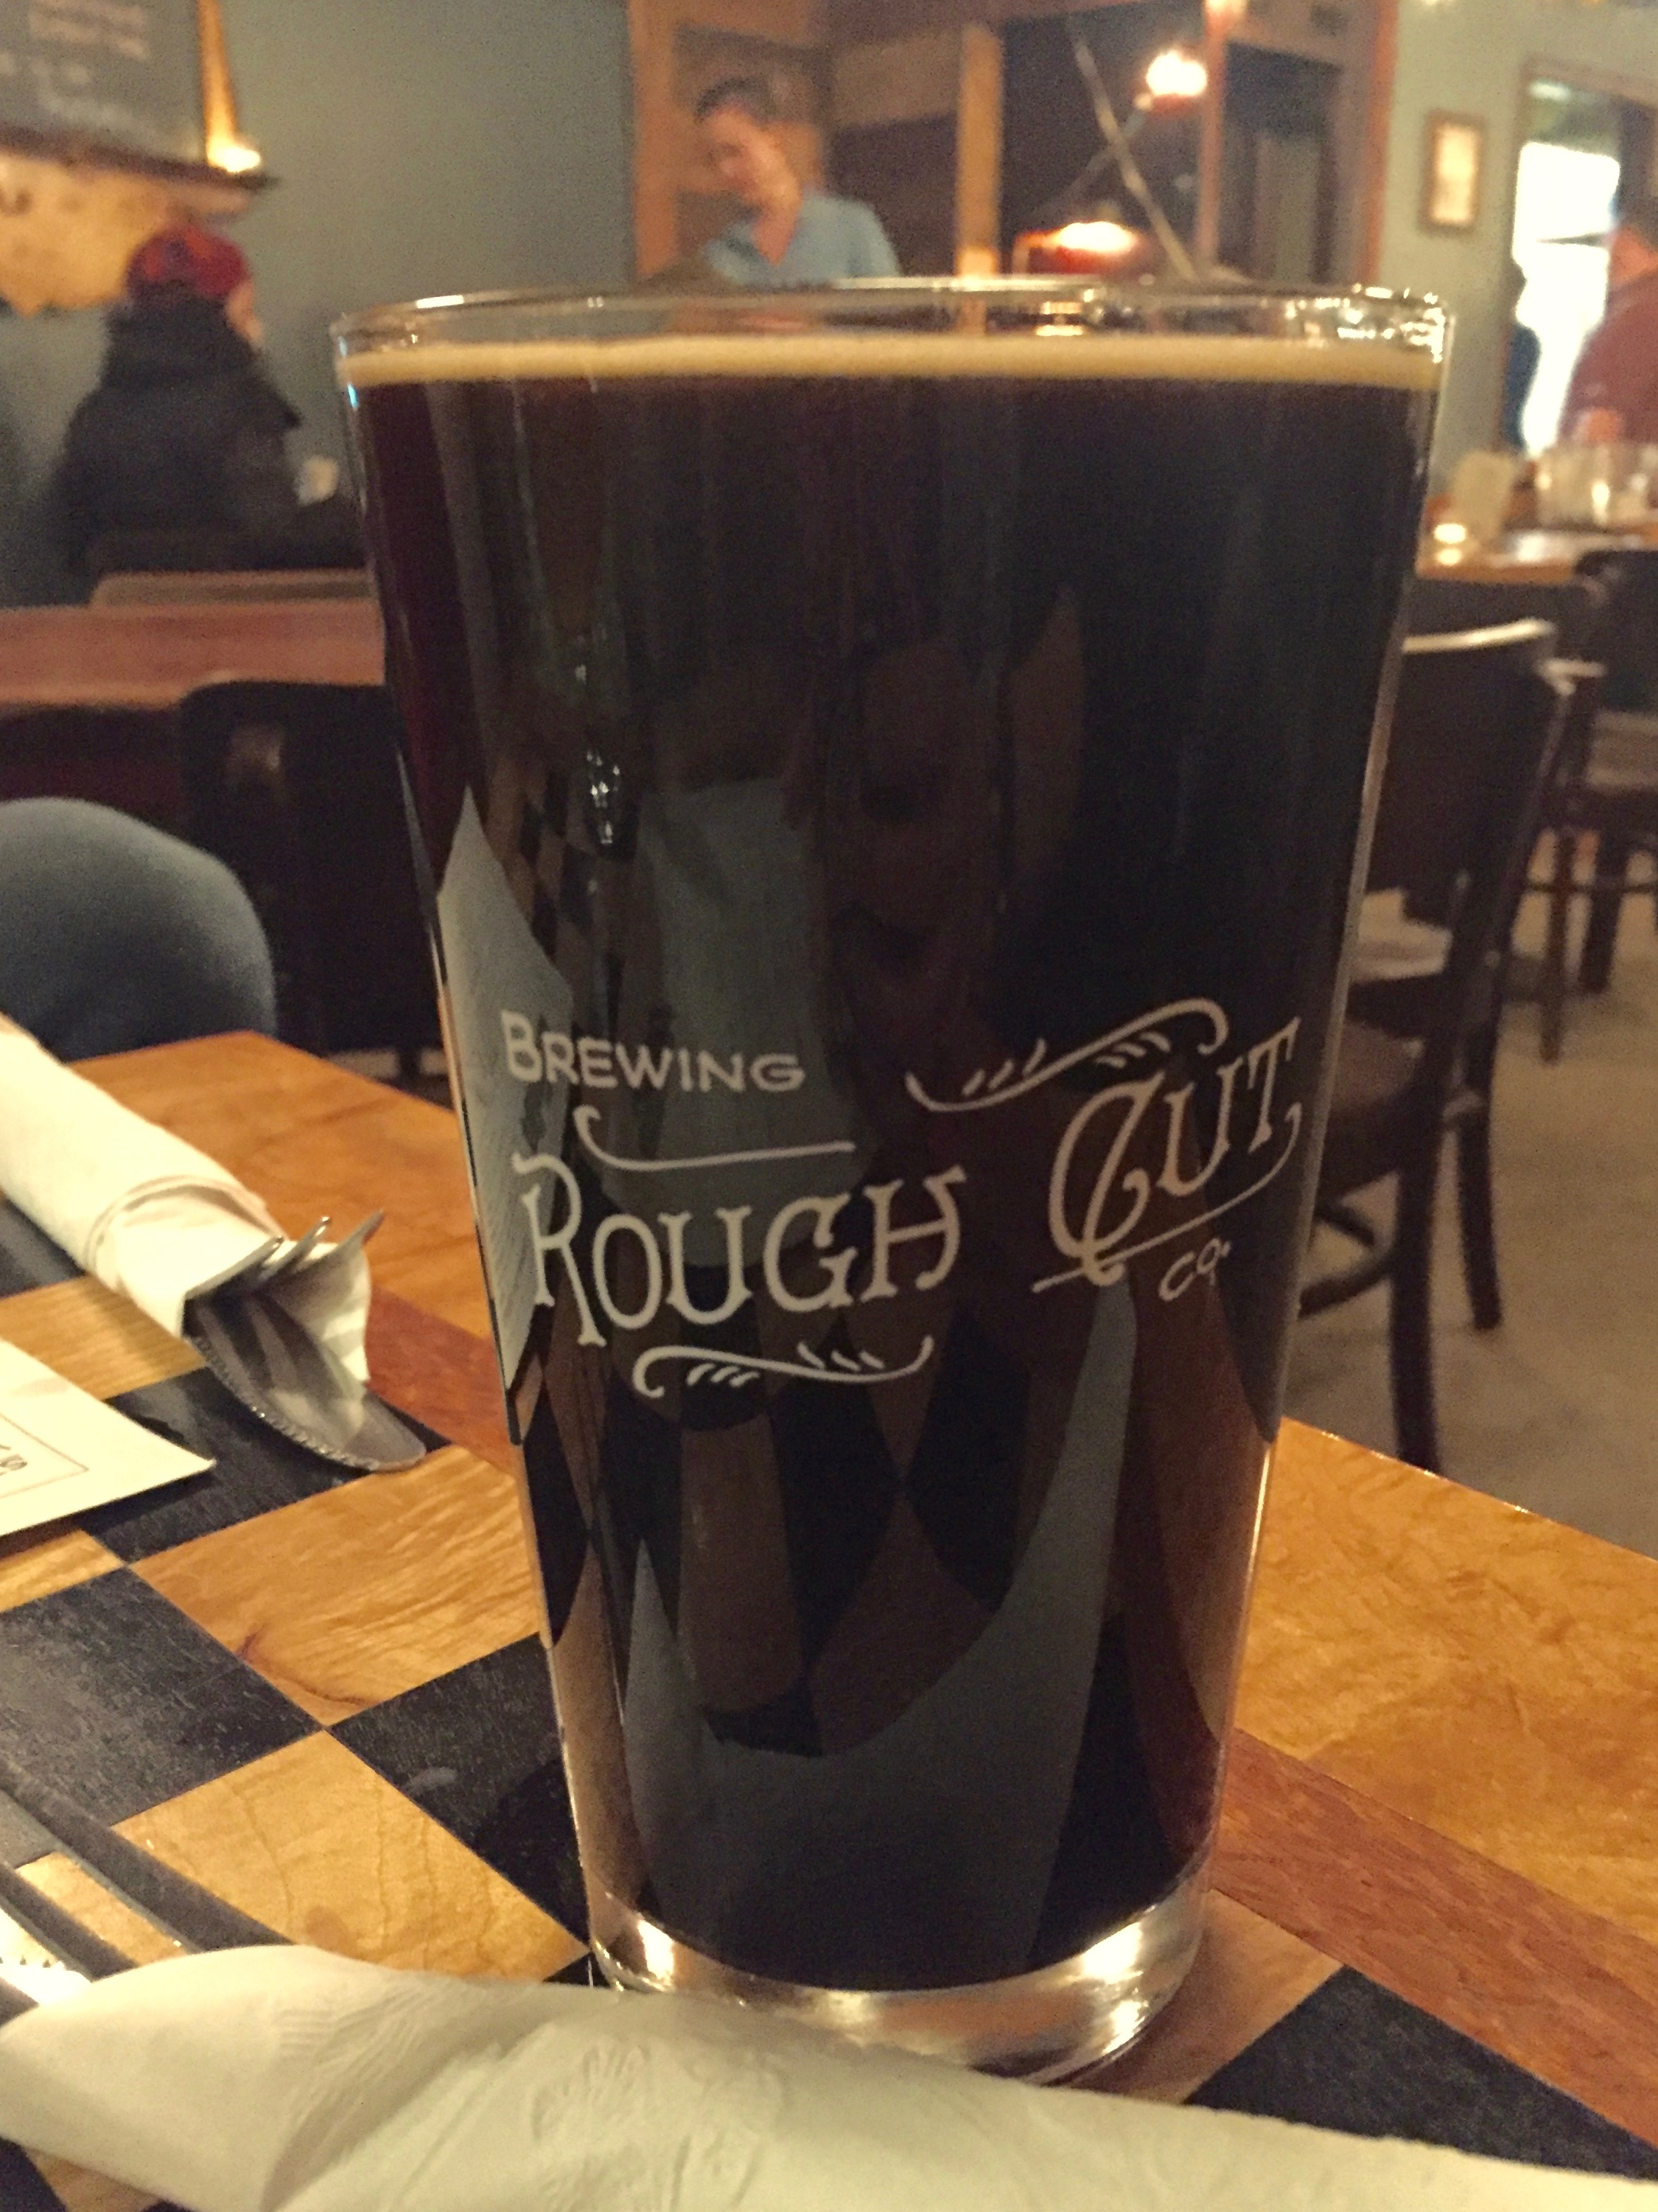 Holstein Milk Stout at Rough Cut Brewing Co.